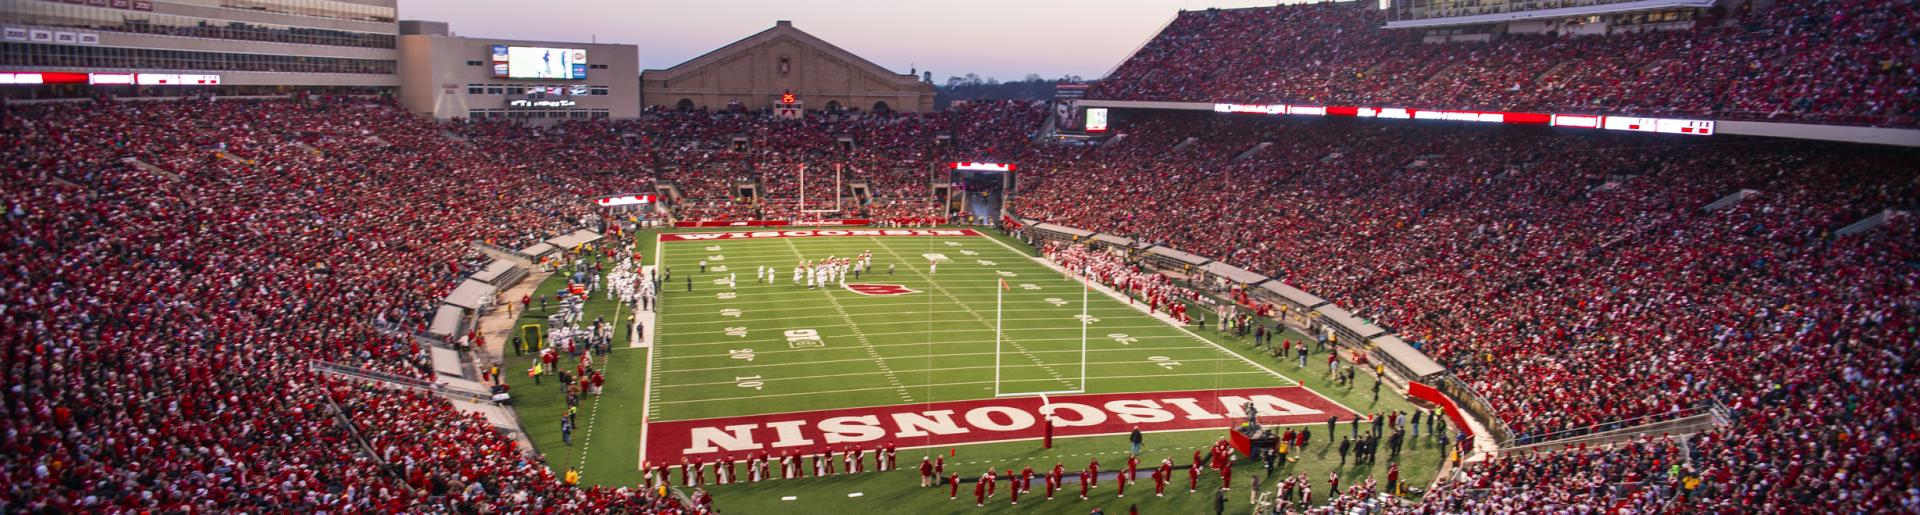 Badger Football at Camp Randall